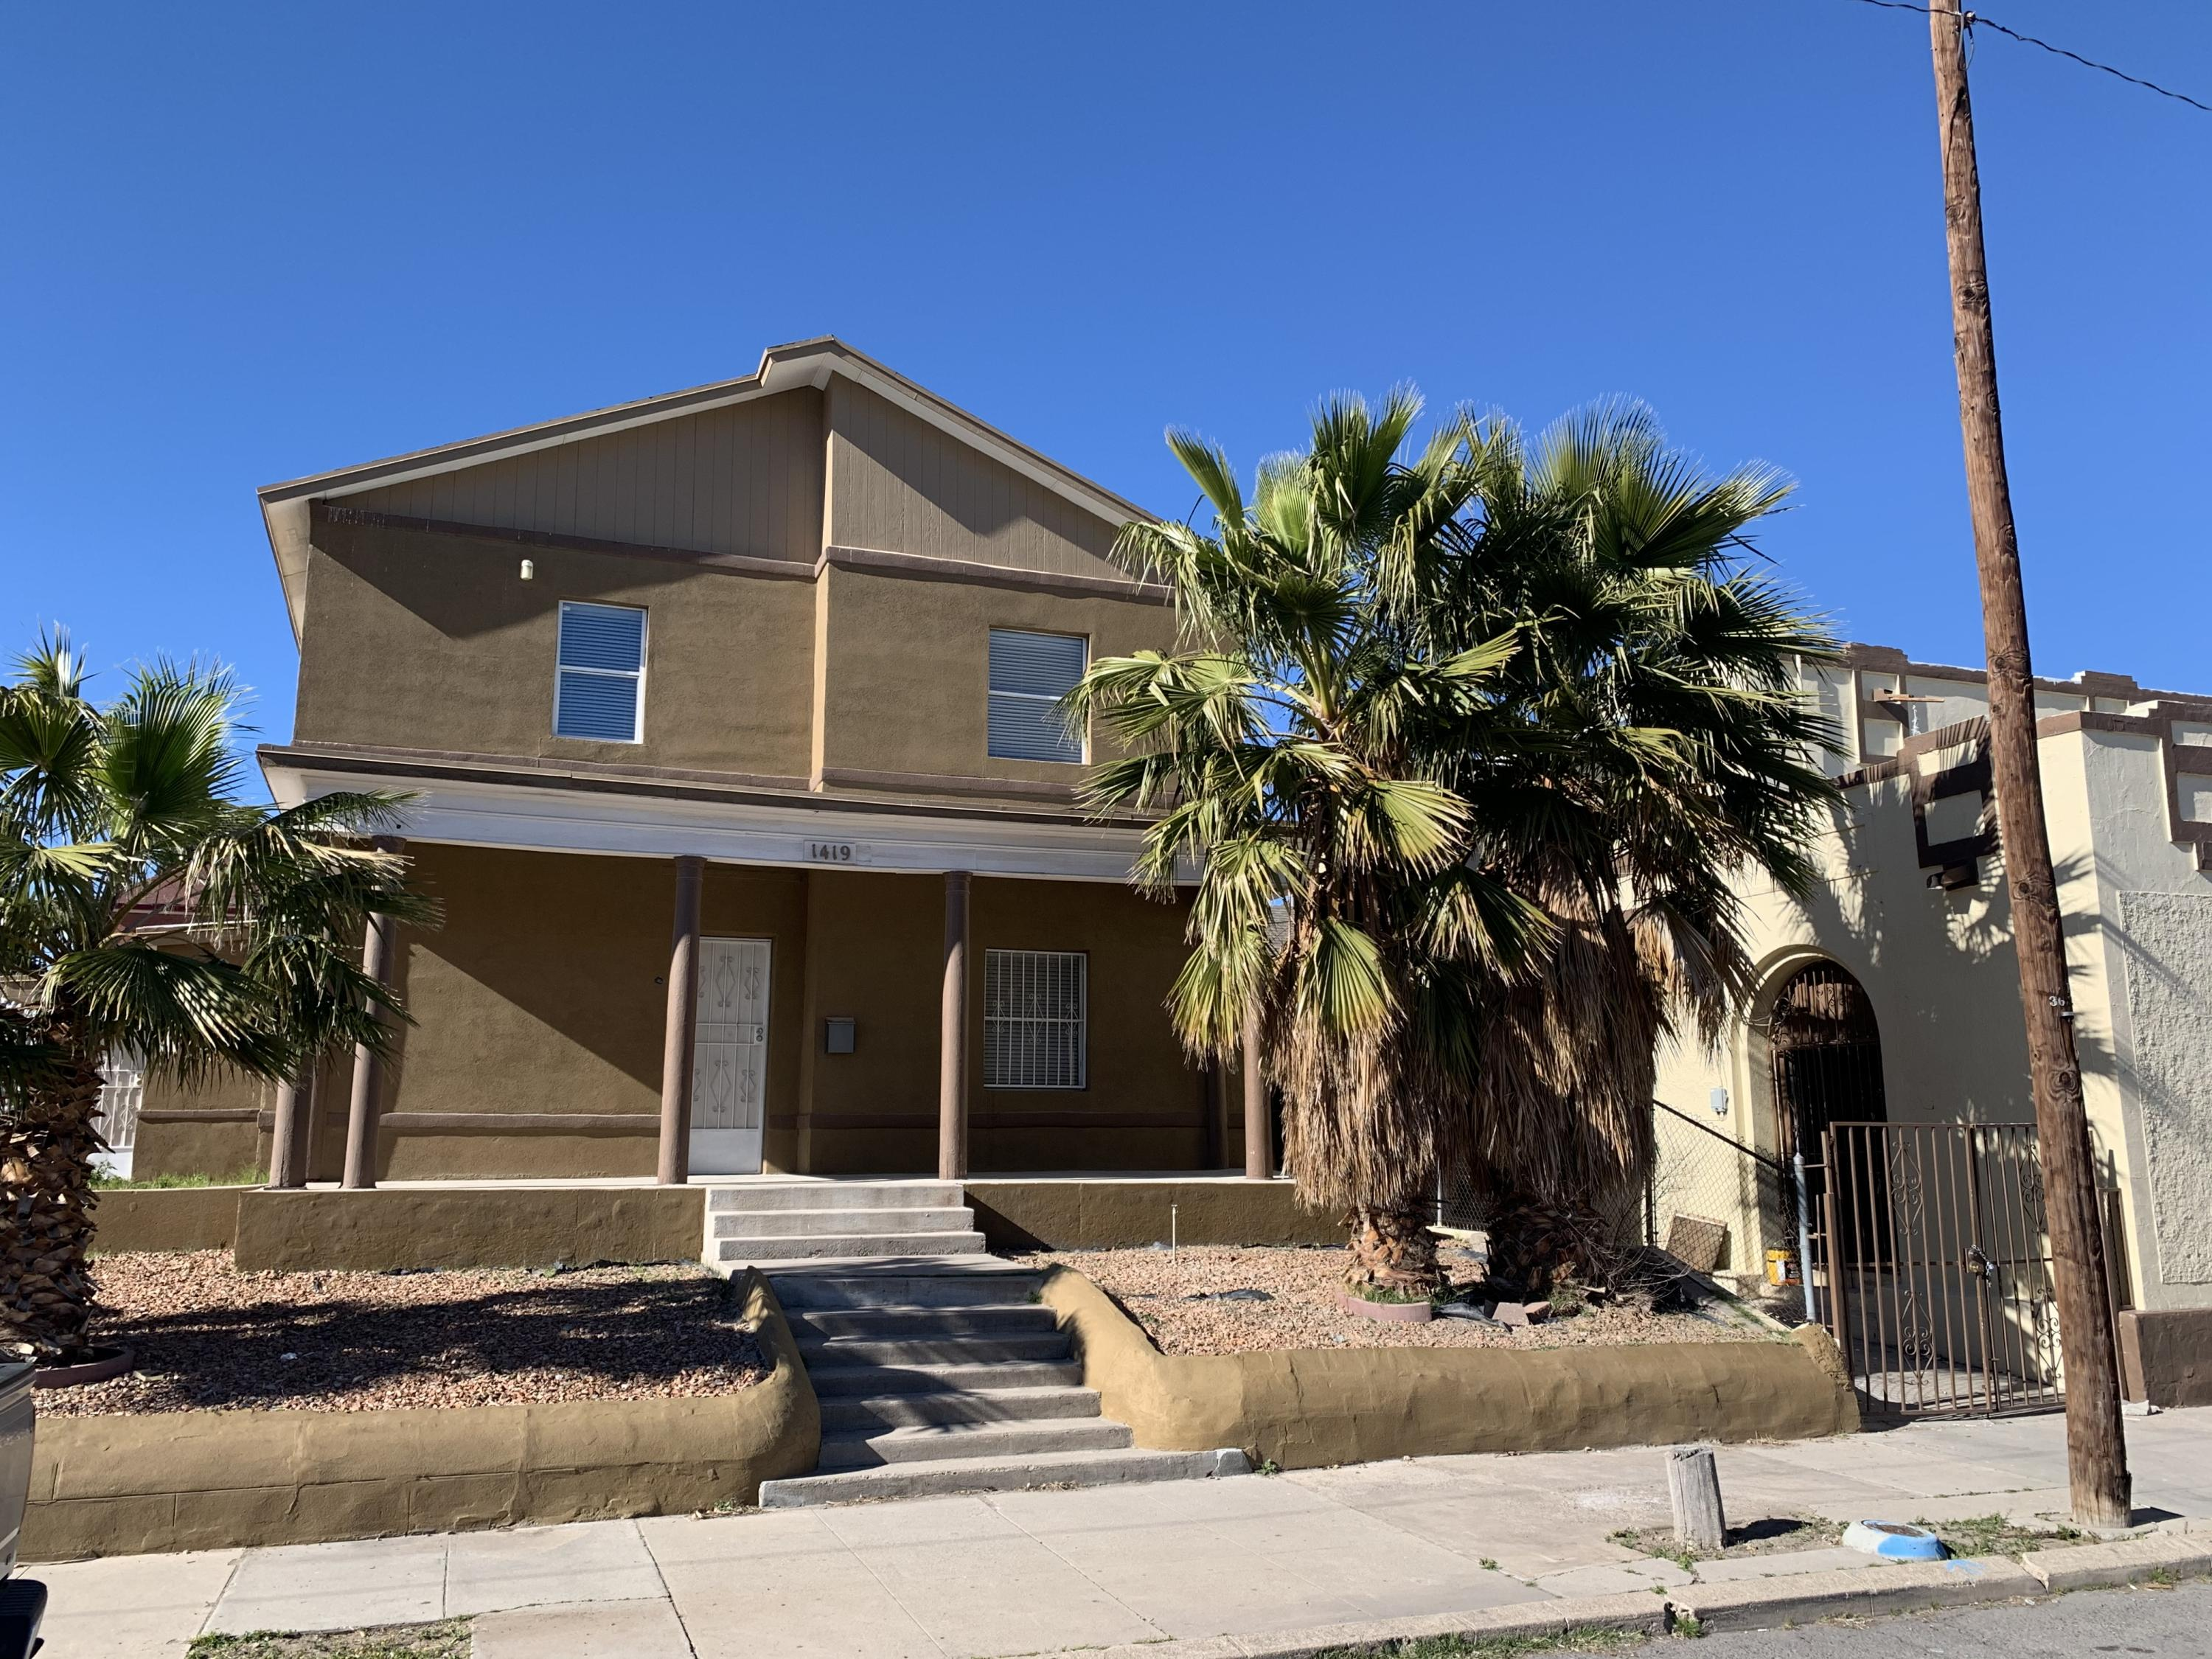 1419 Yandell Drive, El Paso, Texas 79902, ,Commercial,For sale,Yandell,836048